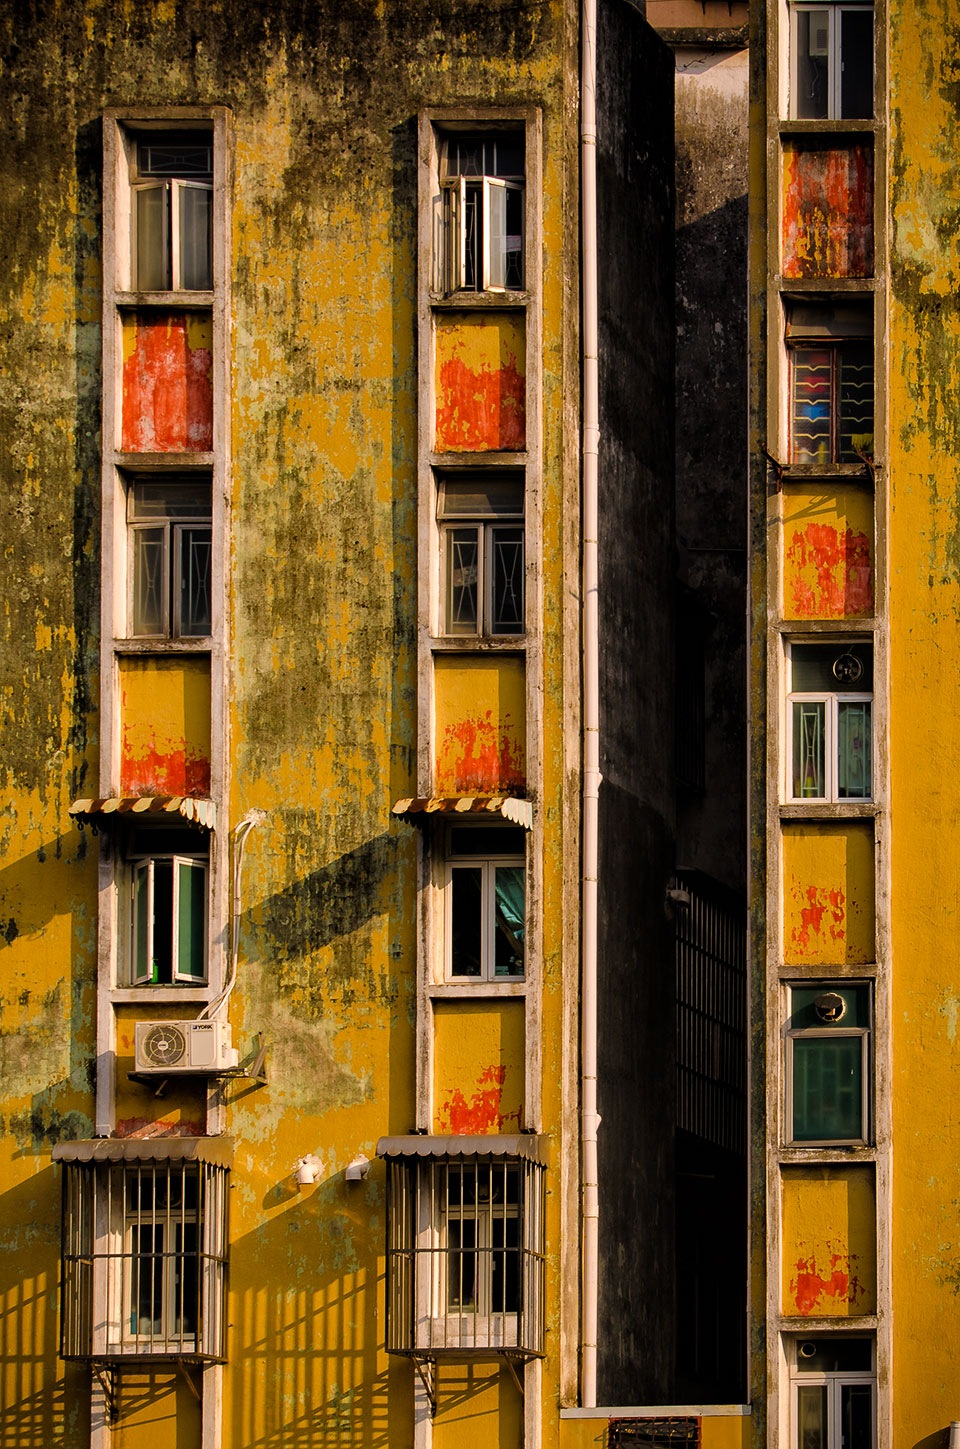 Windows by Hahnman